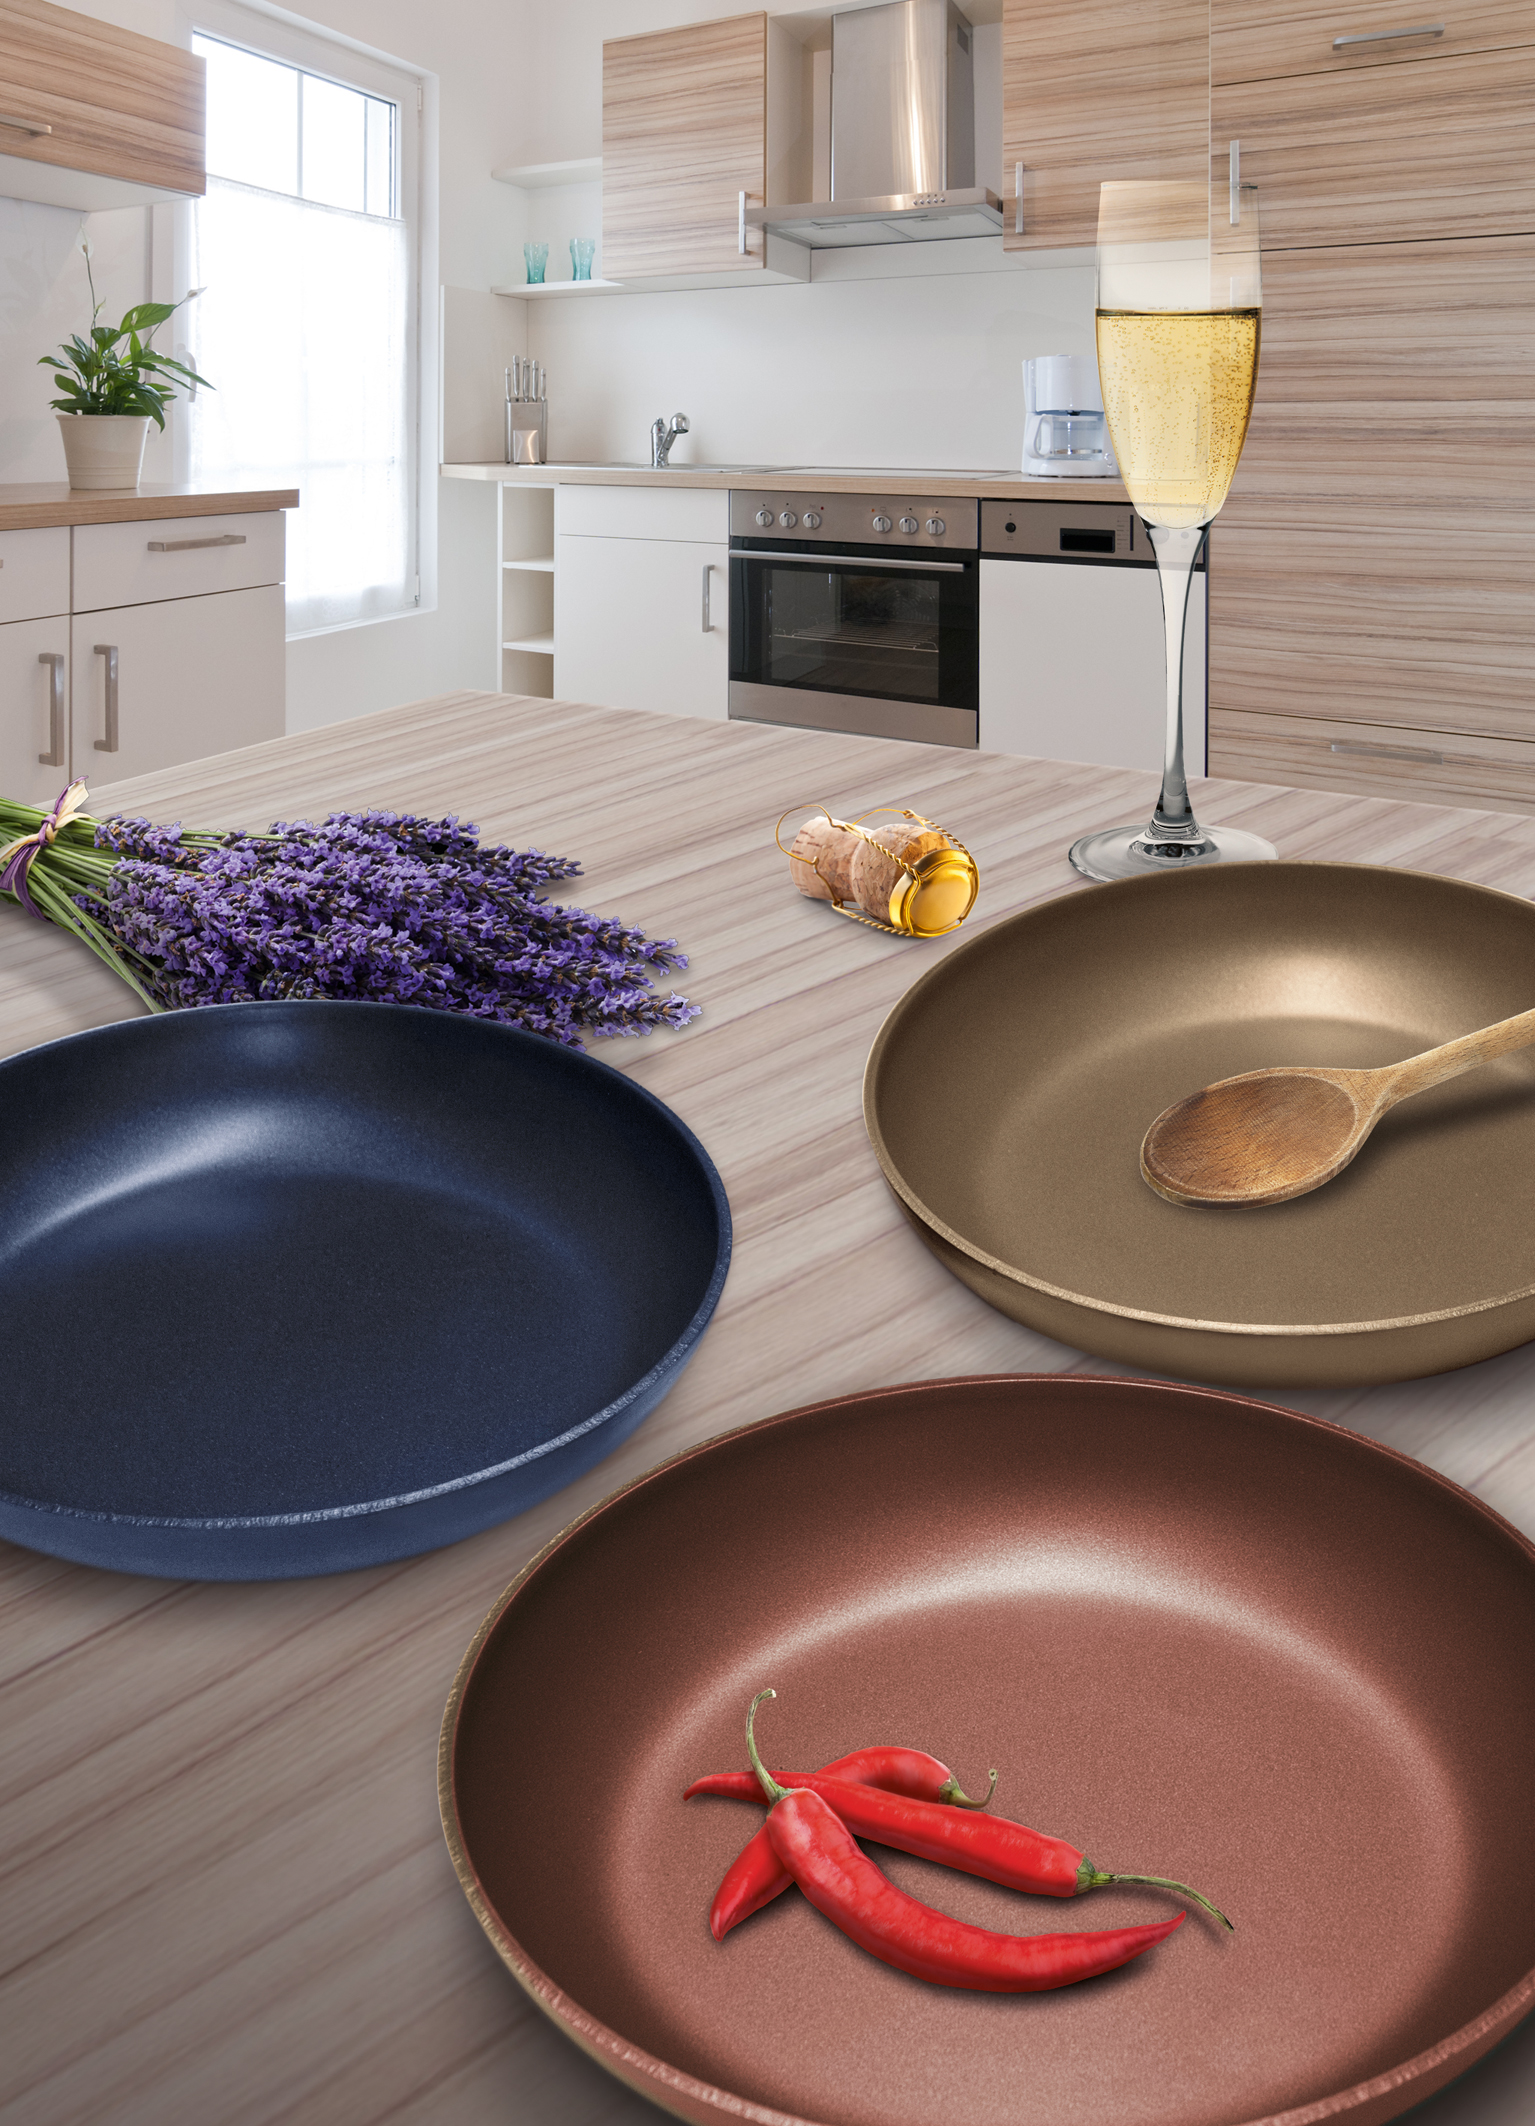 Cookware with DuPont™ Teflon® Nonstick Coating is a